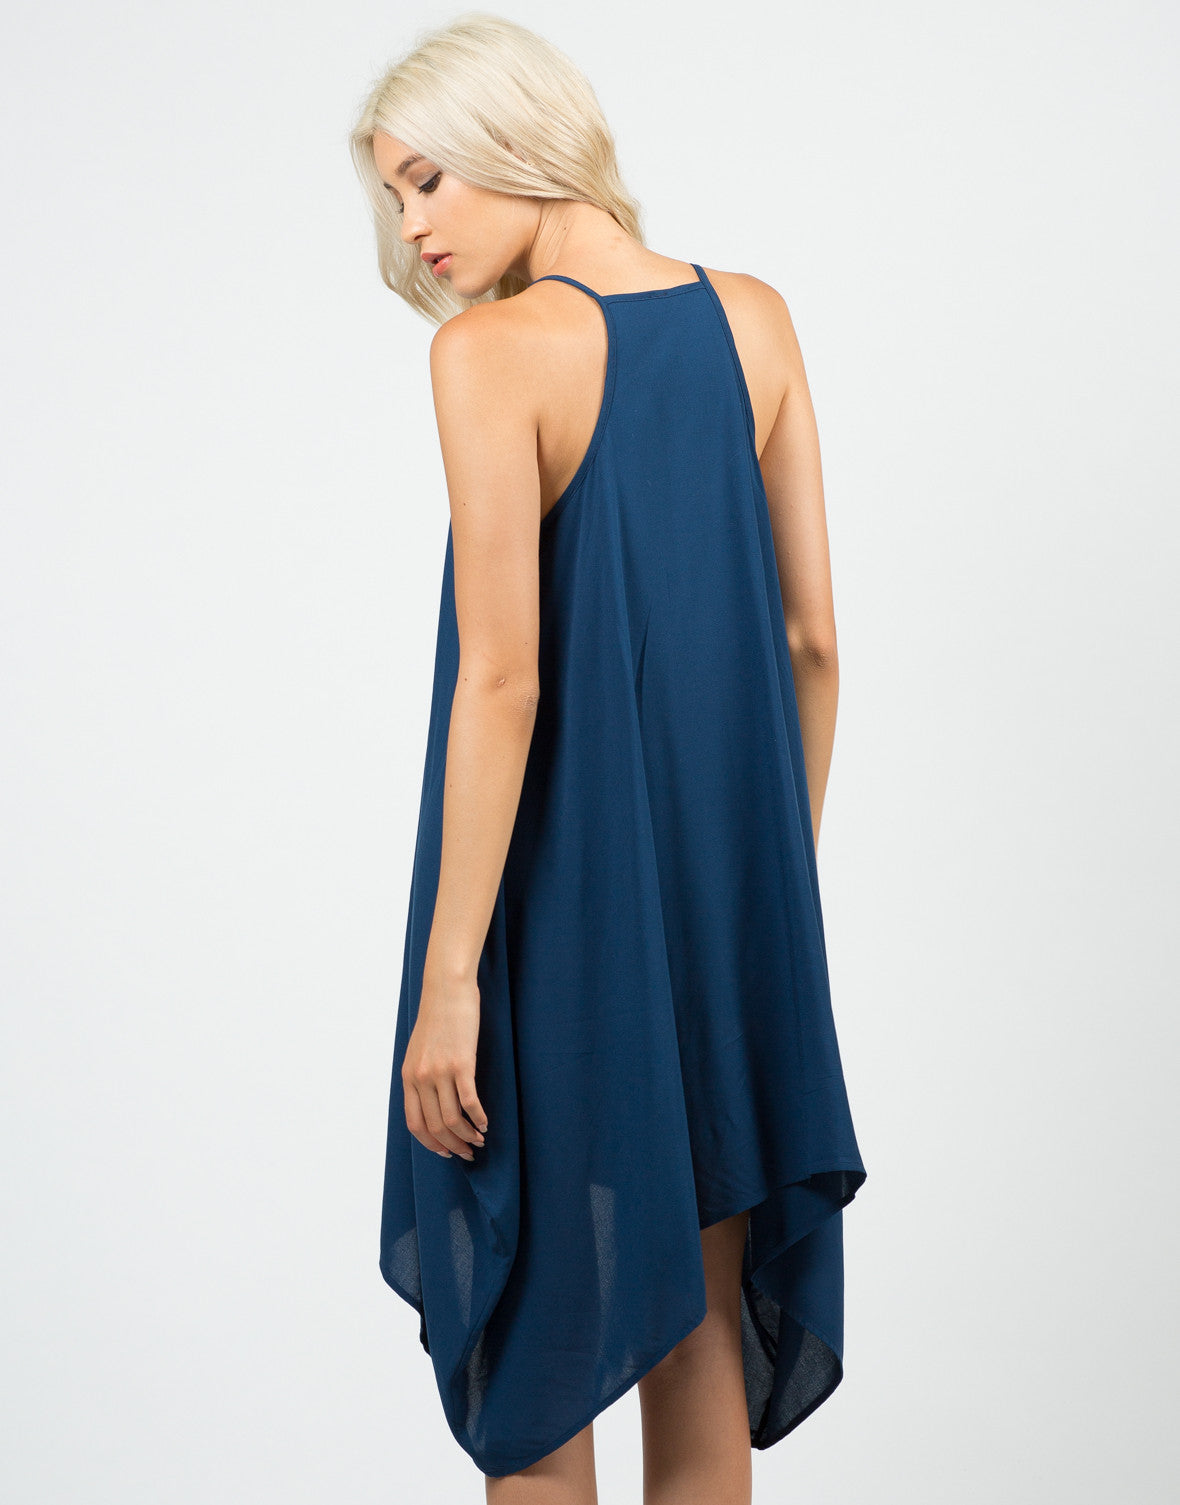 Back View of Drapey Sides Dress